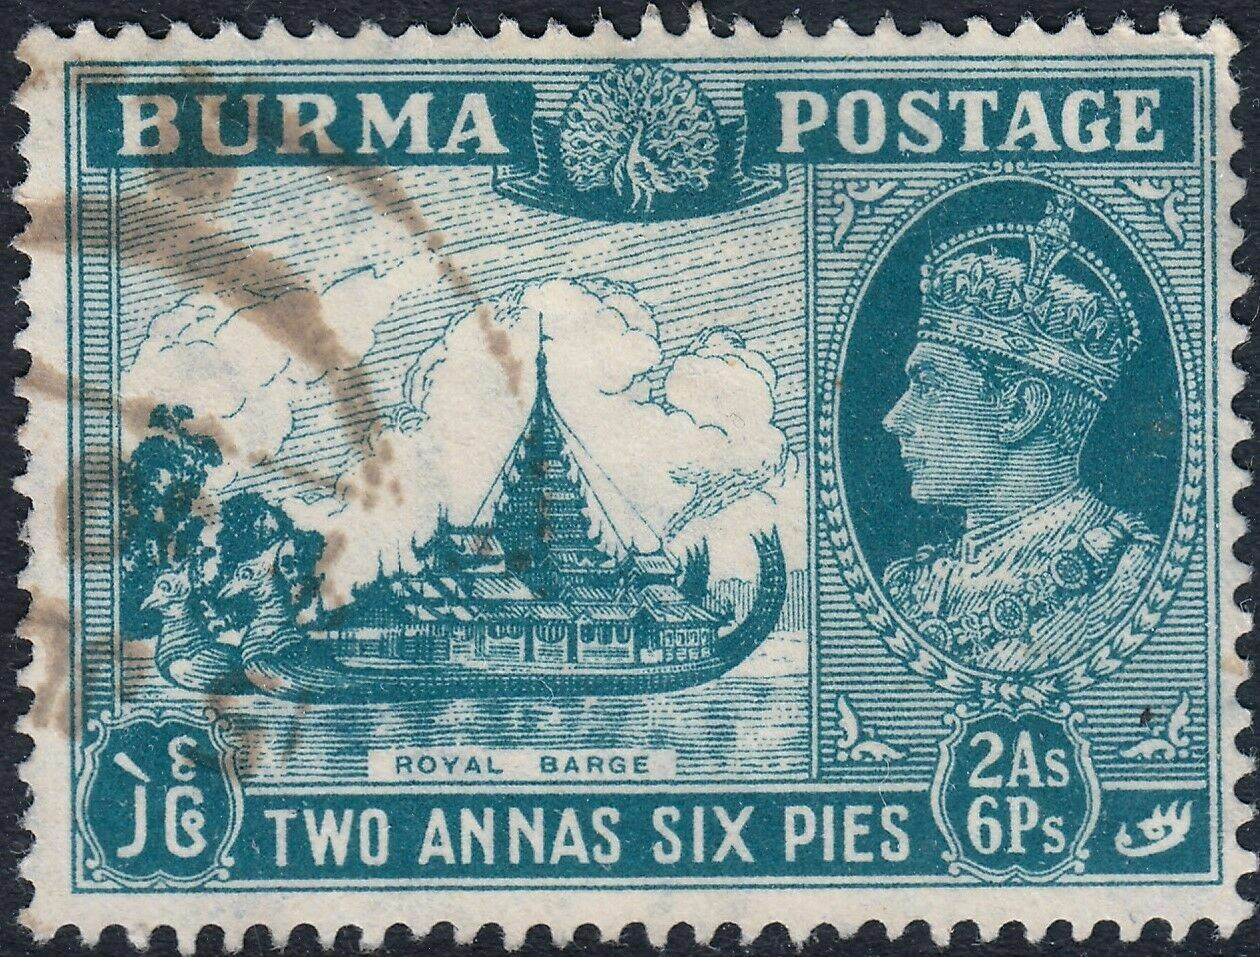 Burma 1946 KGVI 2a 6p Greenish Blue FU